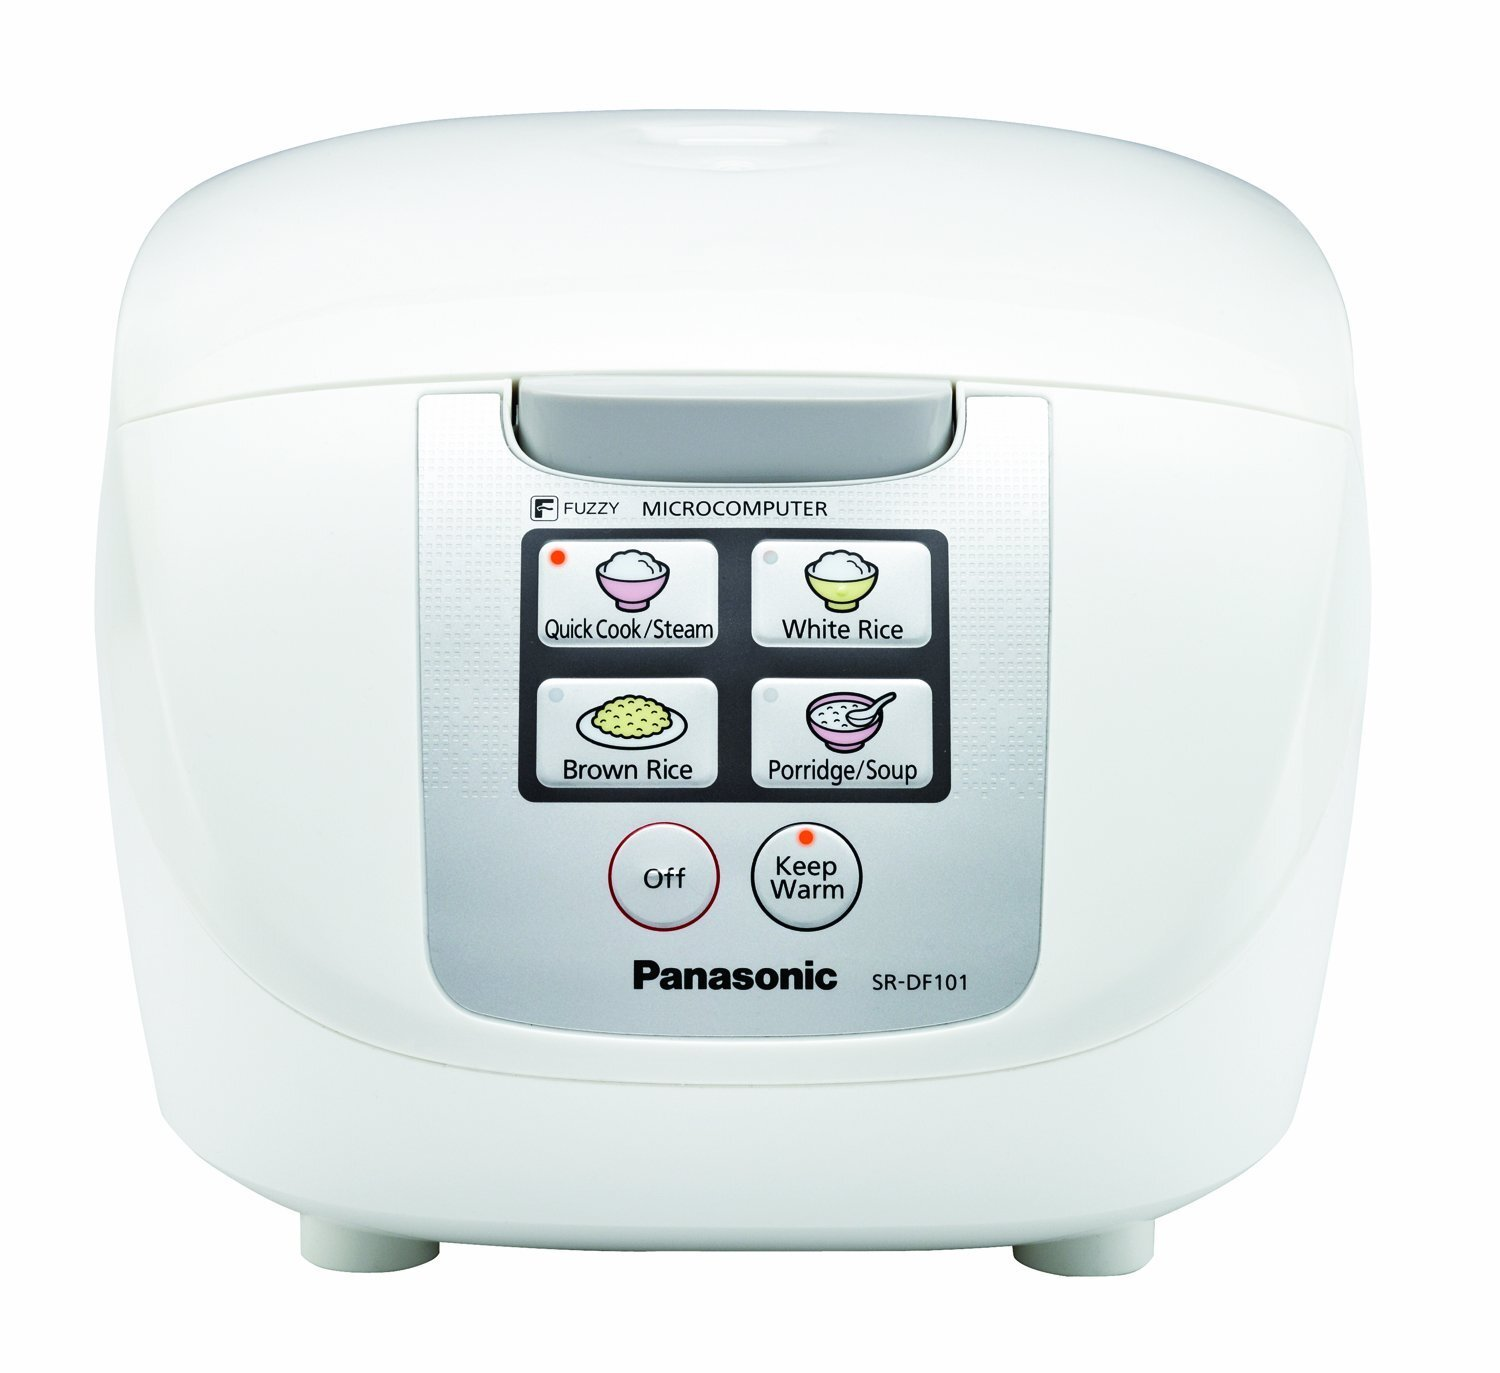 Panasonic 5-Cup Microcomputer Controlled Fuzzy Logic Rice Cooker ...